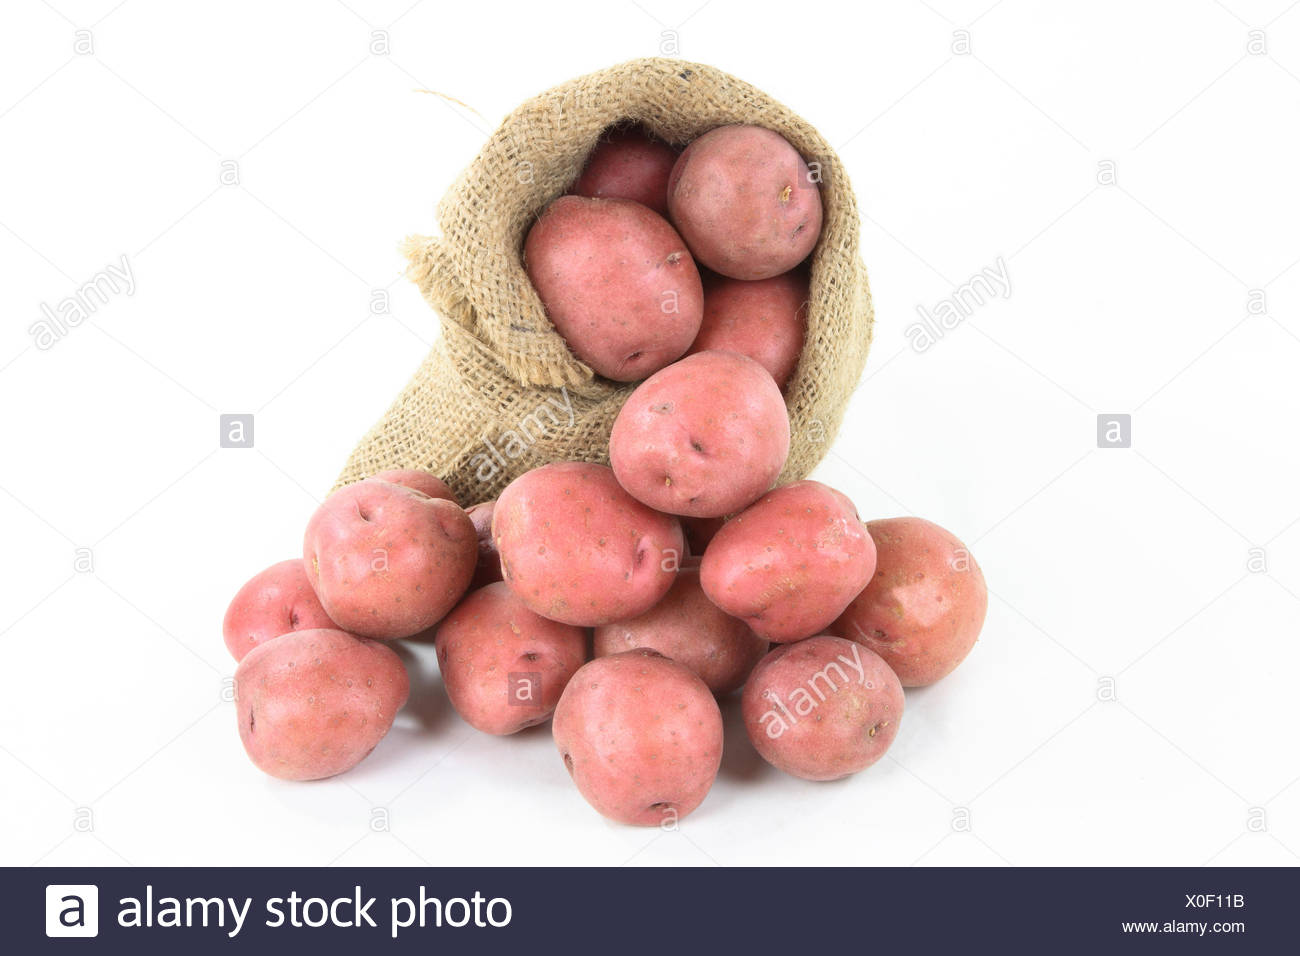 Red mini potatoes - horizontal orientation. - Stock Image